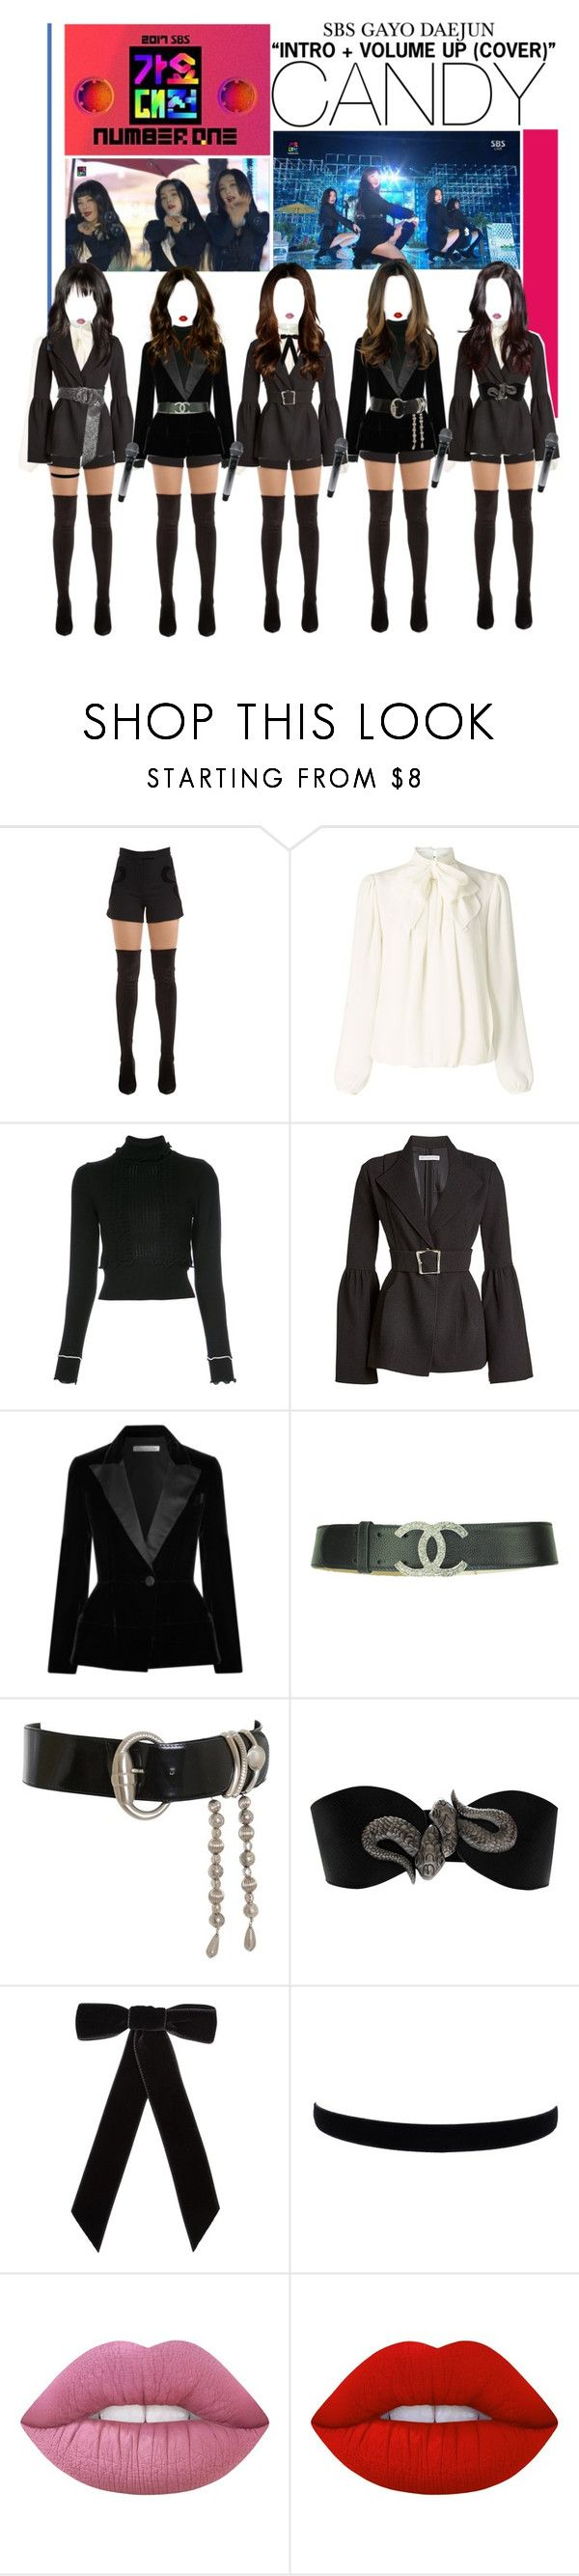 """«CANDY - SBS GAYO DAEJUN»"" by cw-entertainment ❤ liked on Polyvore featuring Elie Saab, Somerset by Alice Temperley, 3.1 Phillip Lim, Rejina Pyo, Oscar de la Renta, Versace, deyatarnofornakedboutique, Jennifer Behr and Lime Crime"